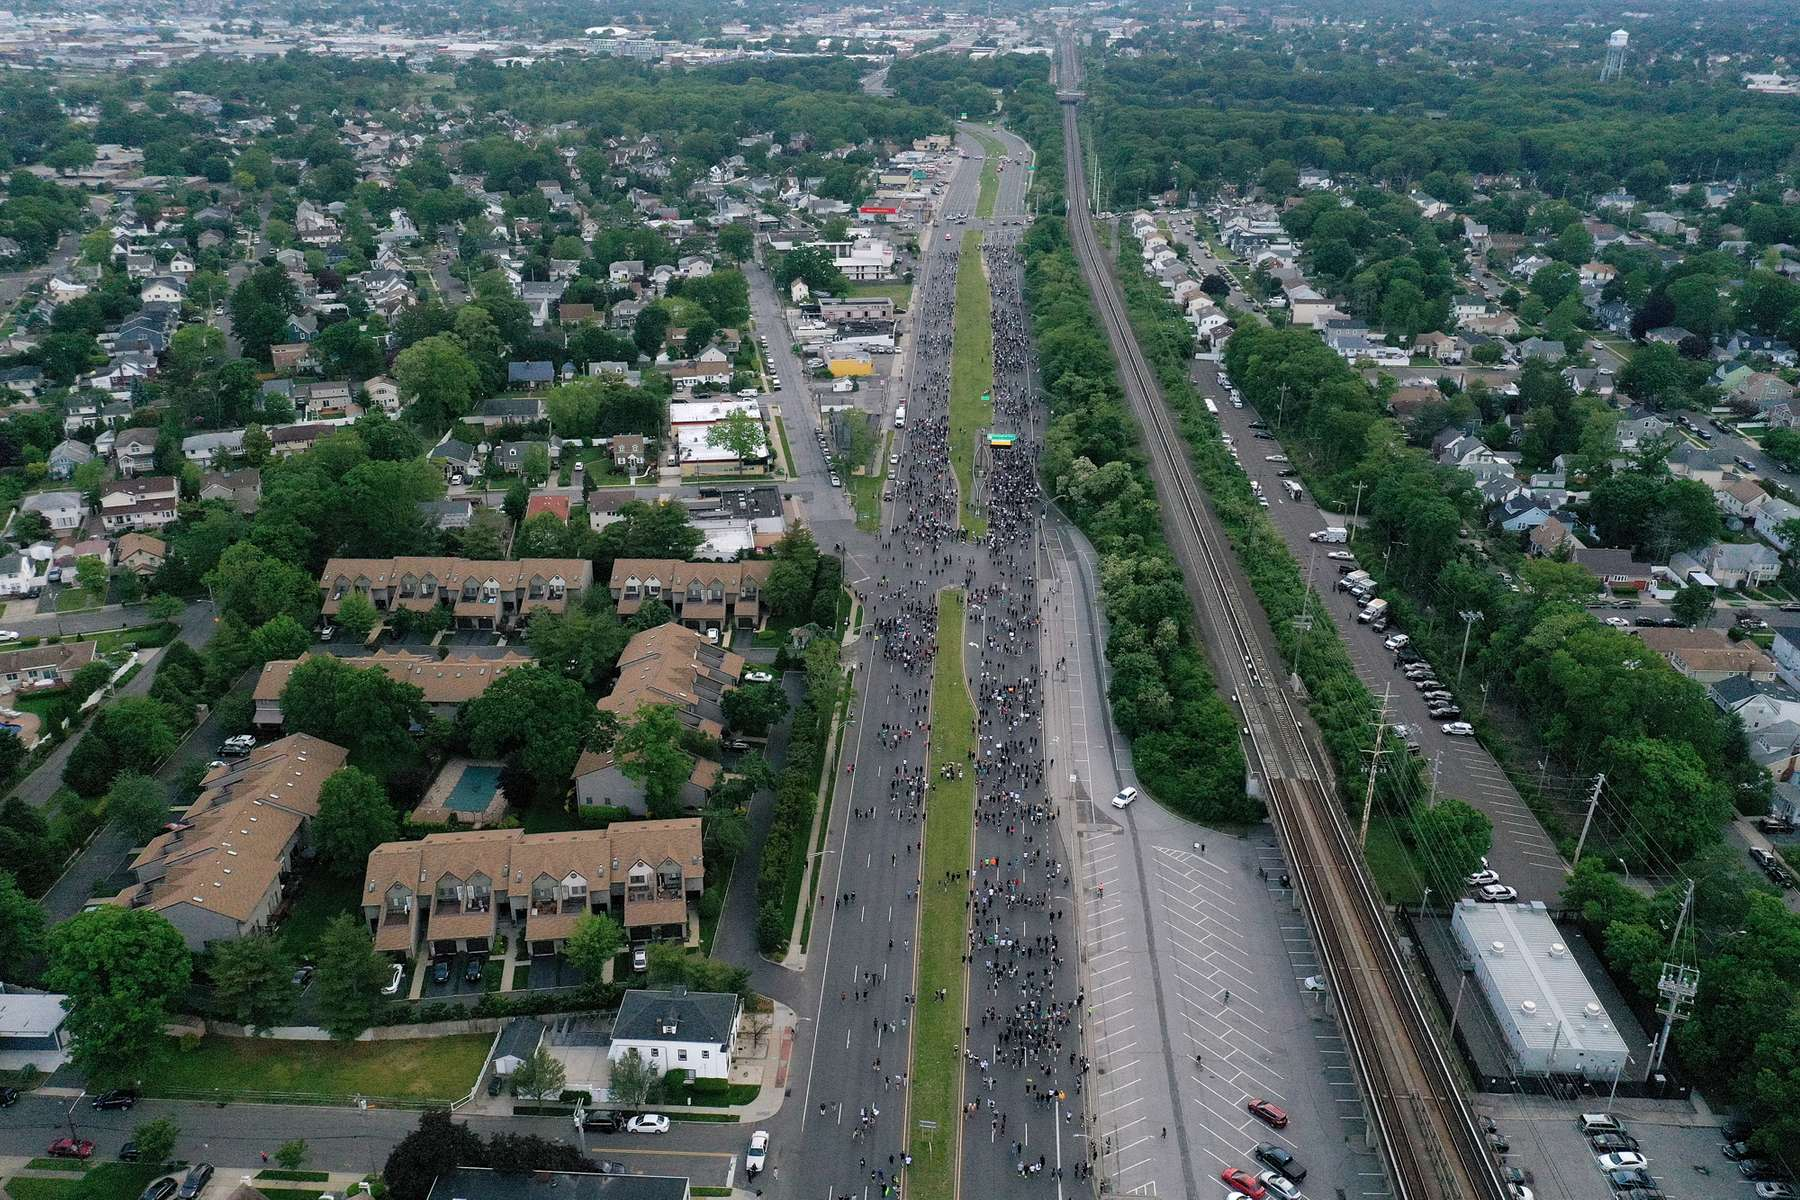 An aerial view of protesters marching to demonstrate the death of George Floyd on June 04, 2020 in Merrick, New York.  Minneapolis Police officer Derek Chauvin was filmed kneeling on George Floyd's neck. Floyd was later pronounced dead at a local hospital. Across the country, protests against Floyd's death have set off days and nights of rage as its the most recent in a series of deaths of black Americans by the police.